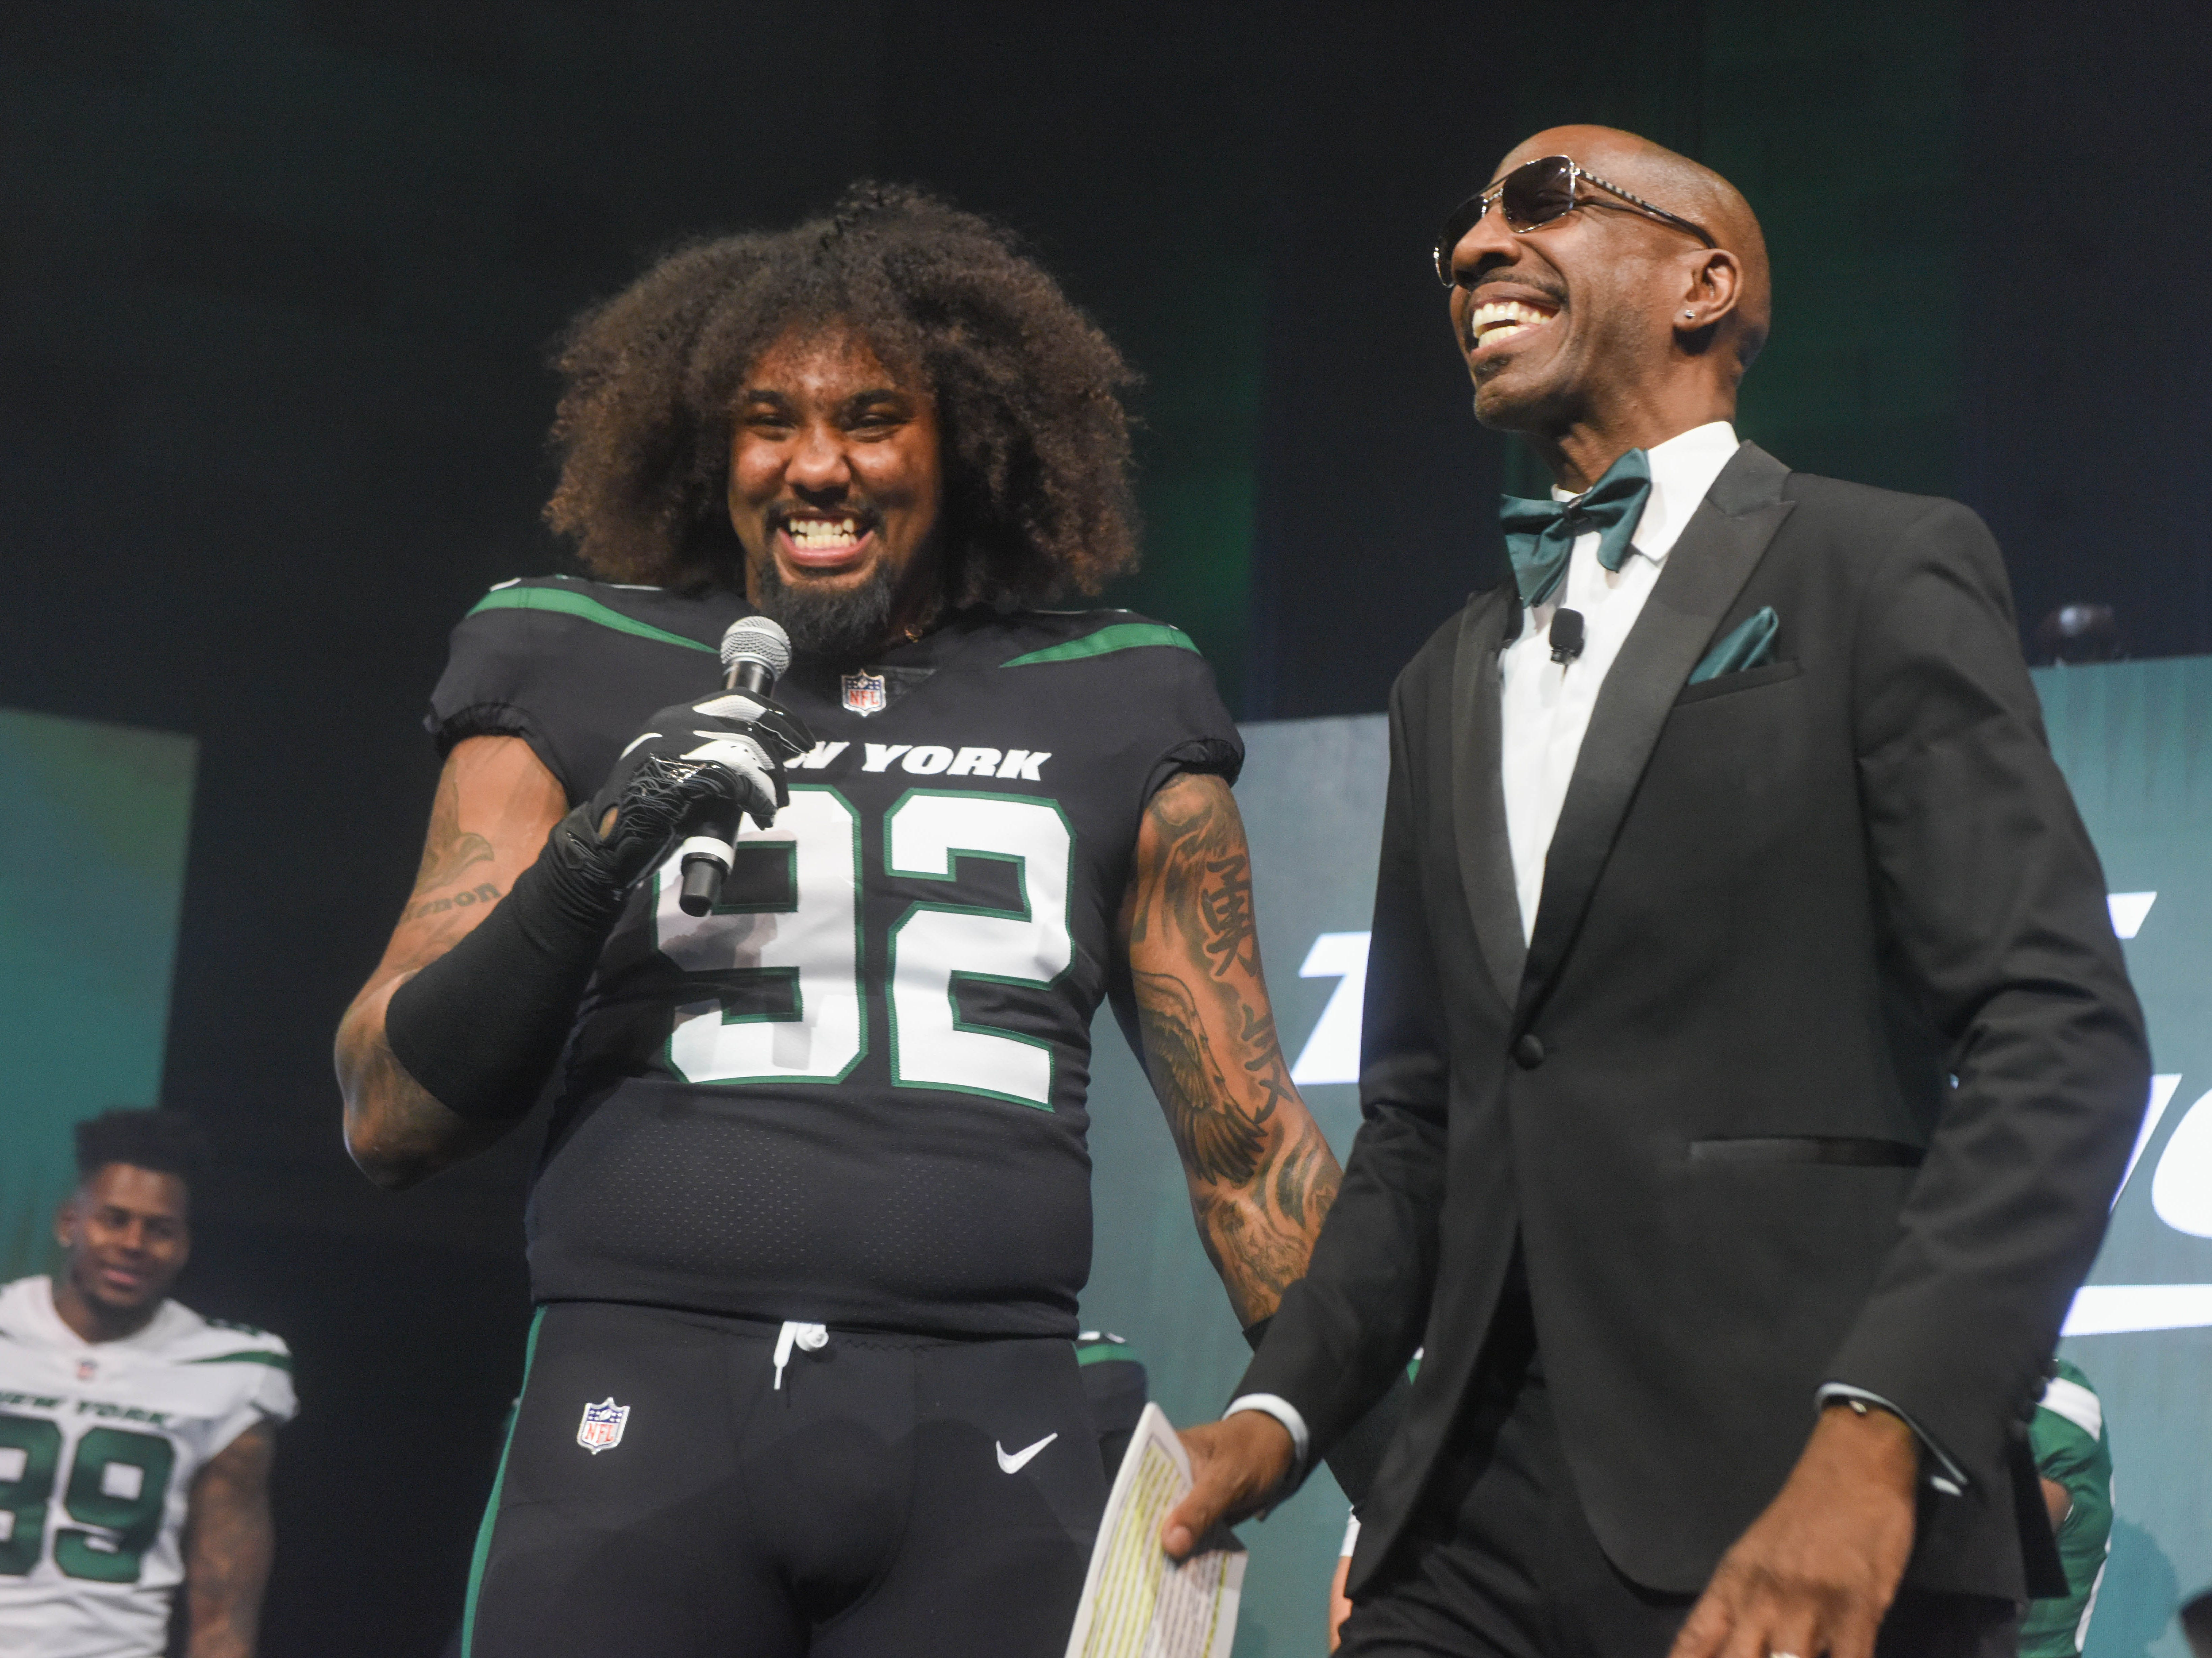 Leonard Williams (NY Jets) and J. B. Smoove (Comedian/Event Host). The NY Jets unveiled their new football uniforms with an event hosted by JB Smoove at Gotham Hall in New York. 04/05/2019